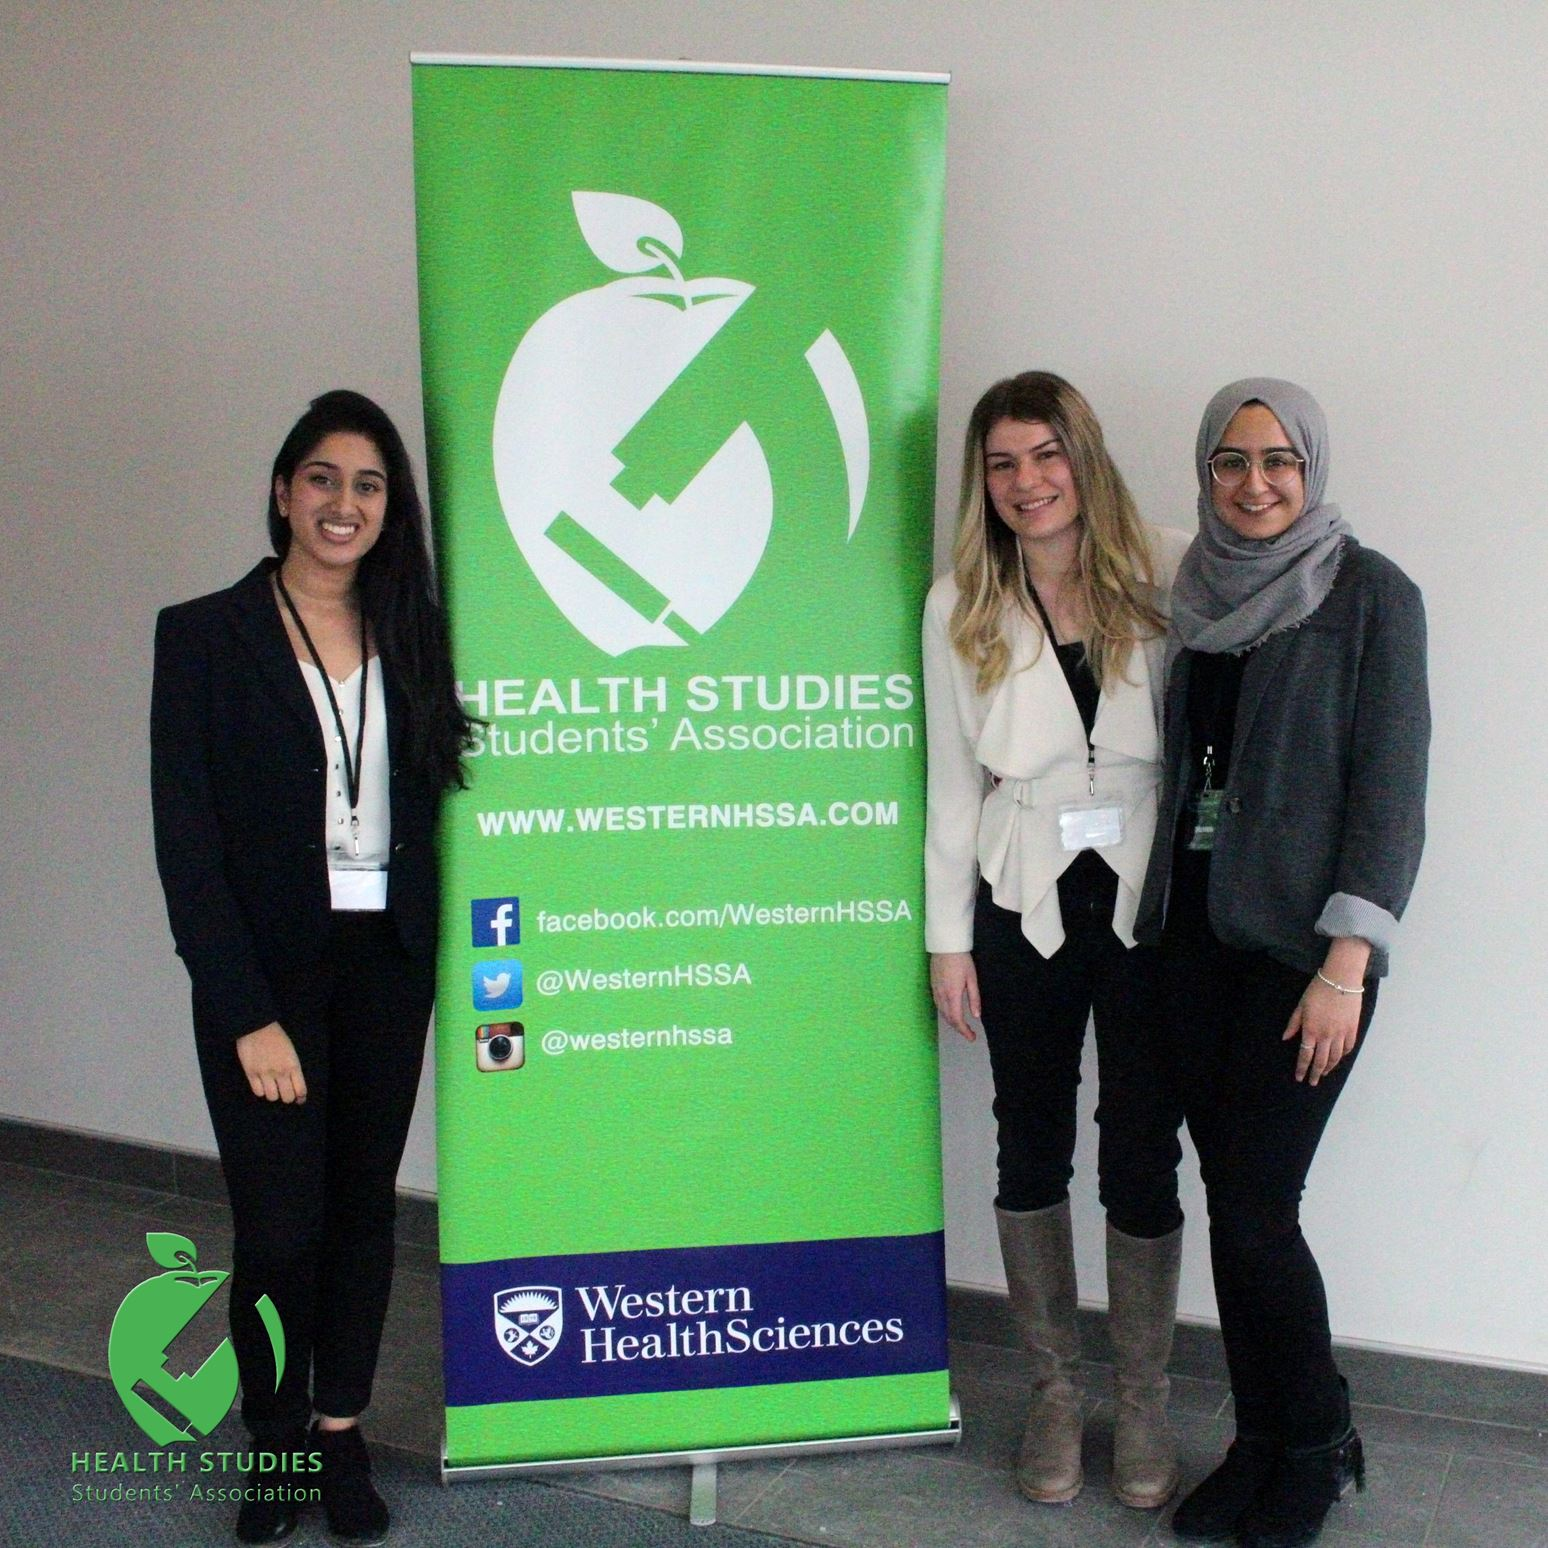 Developing innovations through Health Studies healthcare challenge